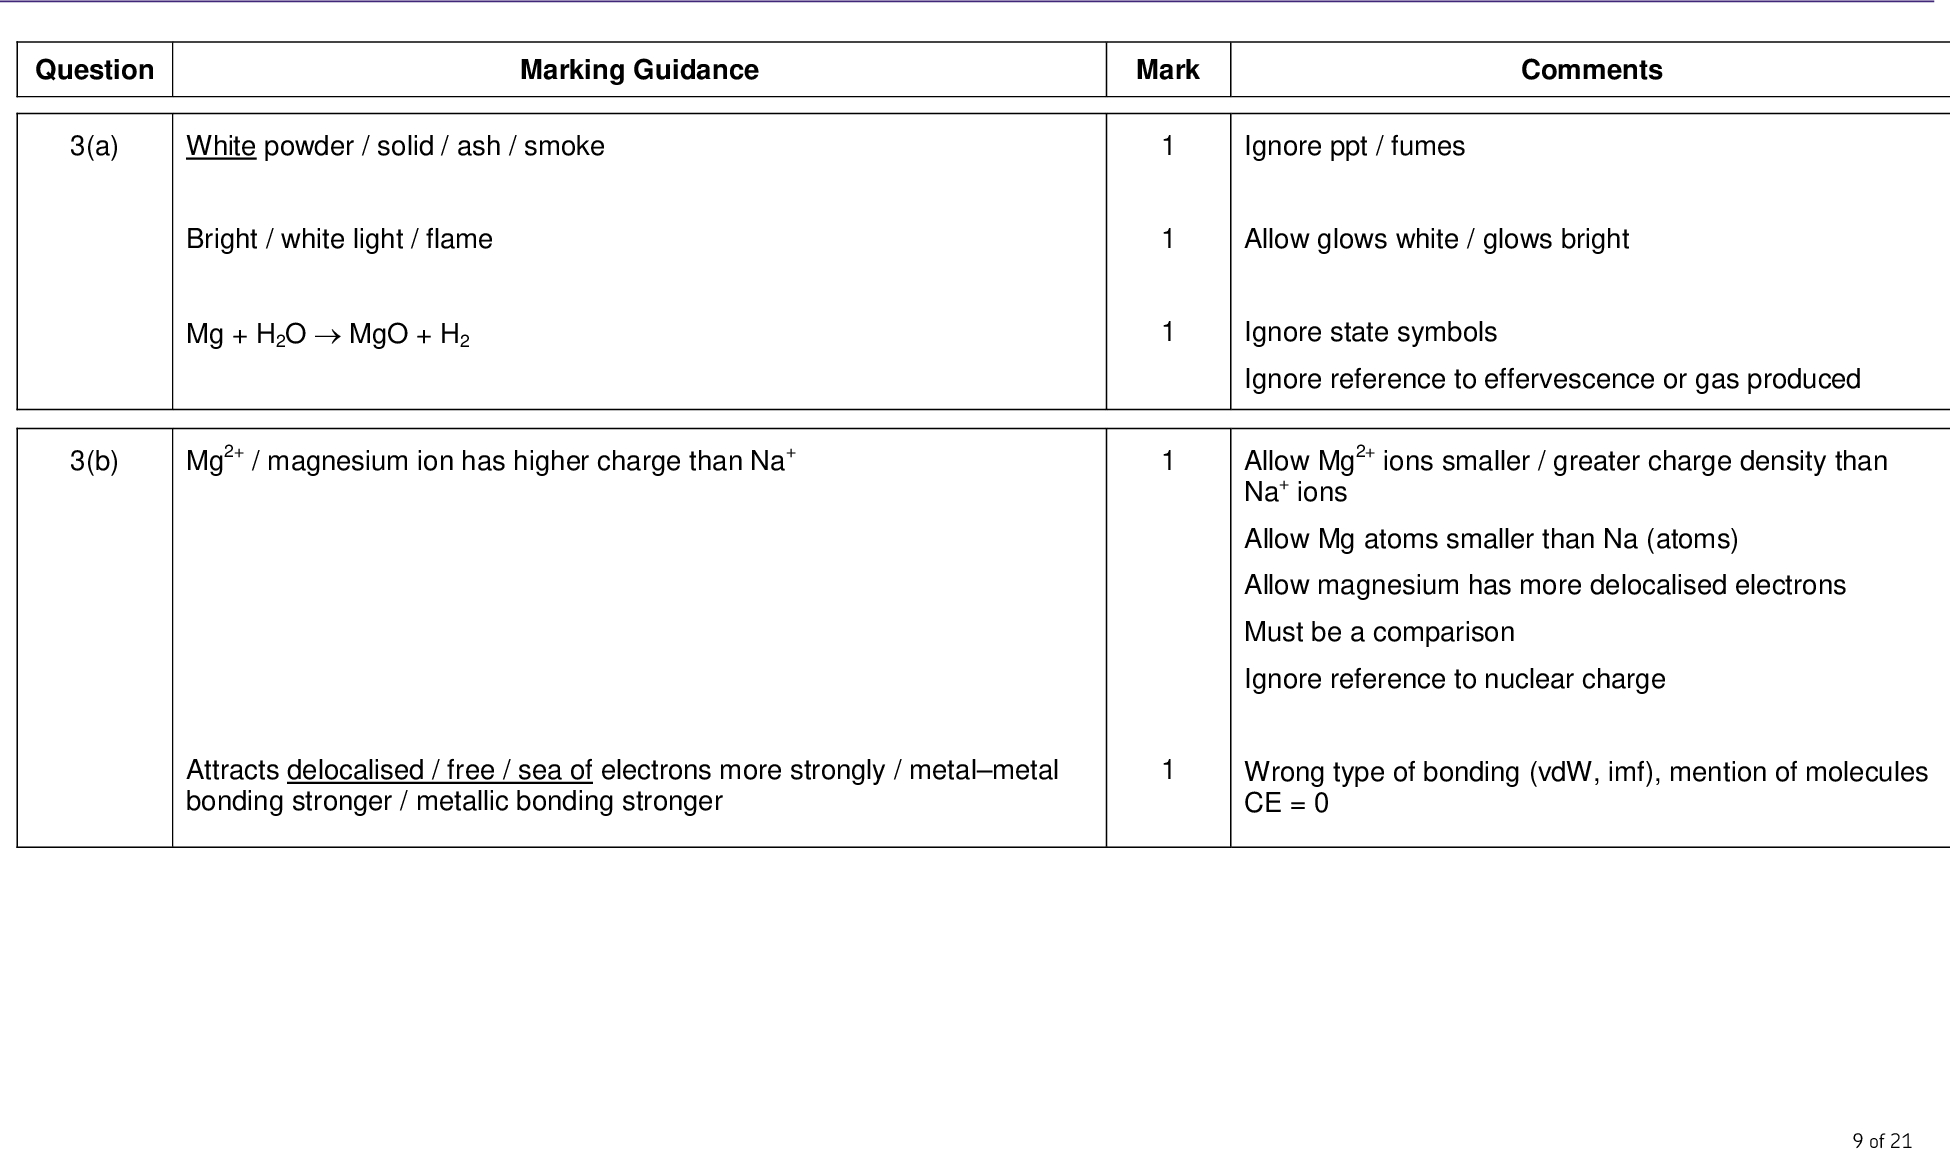 mark scheme a level chemistry chem june marking guidance mark comments white powder solid ash smoke bright white light flame mg h o mgo h mg magnesium ion has higher charge than na attracts delocalised free sea of electrons more strongly metal metal bonding stronger metallic bonding stronger ignore ppt fumes allow glows white glows bright ignore state symbols ignore reference to effervescence or gas produced allow mg ions smaller greater charge density than na ions allow mg atoms smaller than na atoms allow magnesium has more delocalised electrons must be a comparison ignore reference to nuclear charge wrong type of bonding vdw imf mention of molecules ce of question a b mark scheme a level chemistry chem june structure macromolecular giant molecule giant covalent bonding covalent giant covalent physical properties any two from hard brittle not malleable insoluble non conductor formula p o structure molecular bonding covalent shared electron pair van der waals dipole dipole forces between molecules mark independently ignore correct chemical properties ignore strong high boiling point rigid mention of ionic or metallic can score m only if macromolecular can score m m only allow vdw imf and dipole dipole imf but do not allow imf alone of c d e so h o h hso f p o mgo mg po or p o mgo mg po or p o mgo mg po etc mark scheme a level chemistry chem june products must be ions allow so h o h so allow two equations showing intermediate formation of h so ignore state symbols allow multiples that ends up as ions ignore state symbols allow multiples of